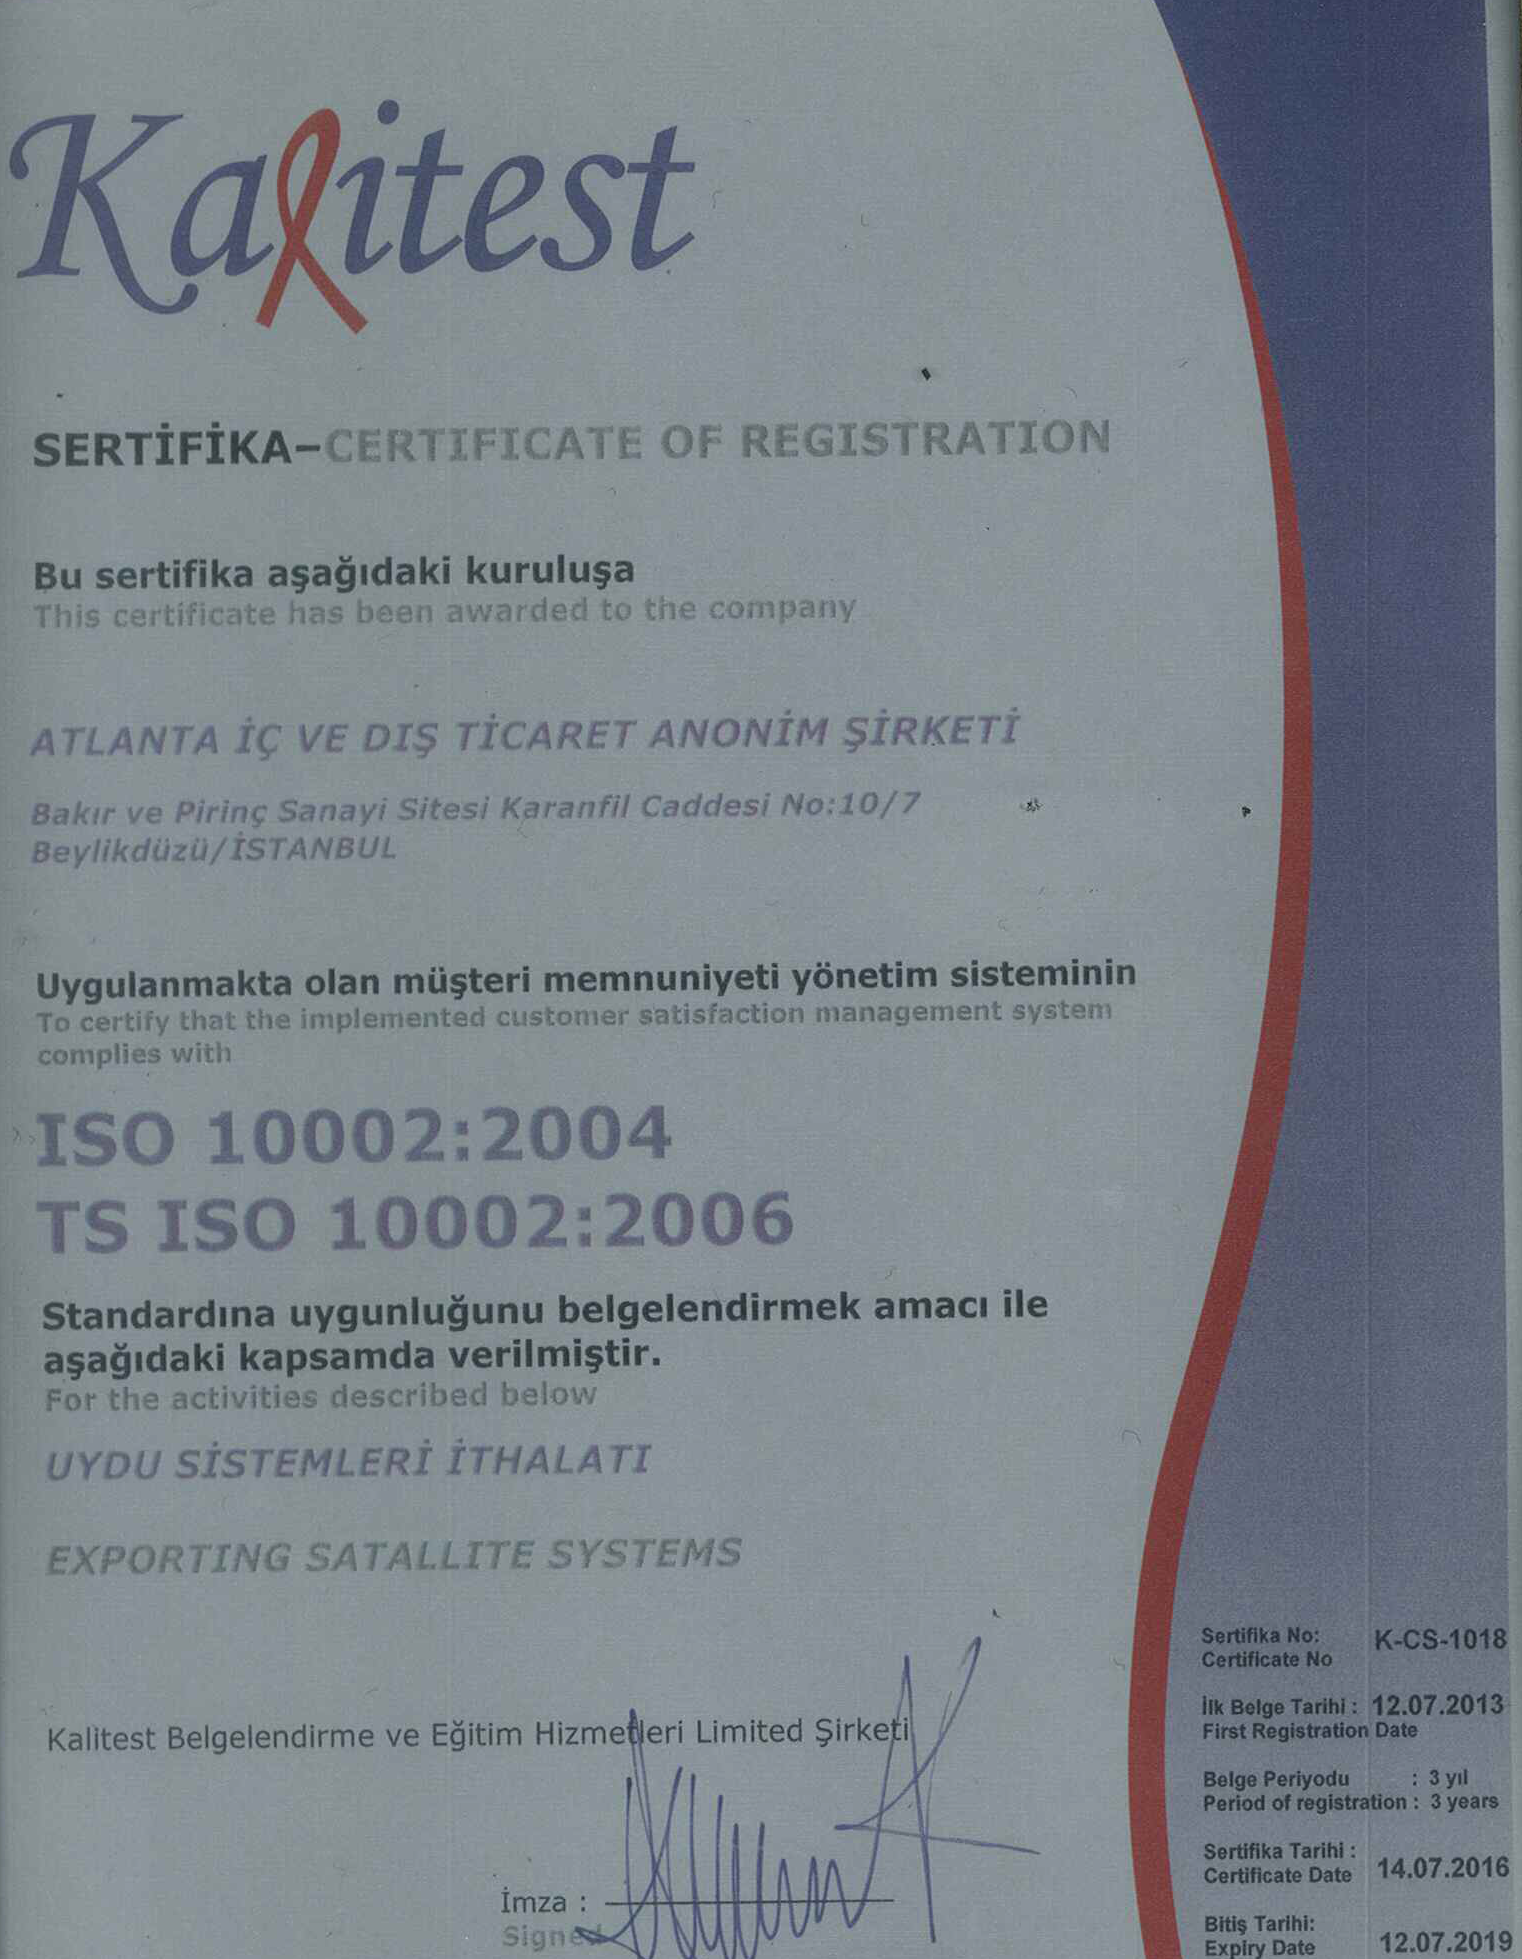 ISO 10002:2004